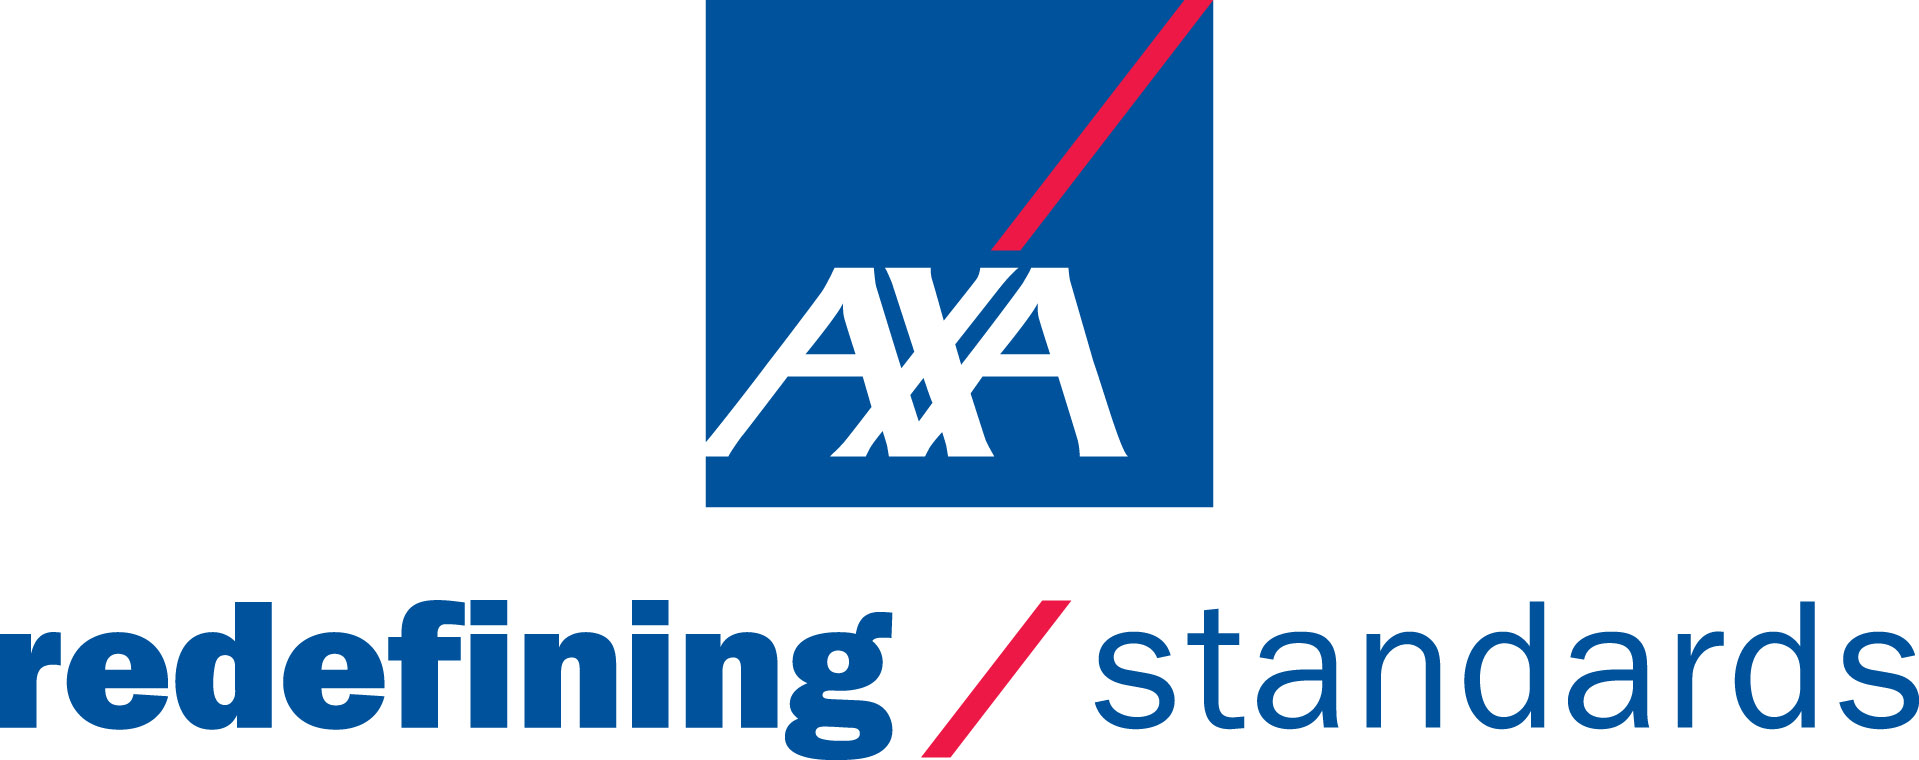 AXA Group Logo